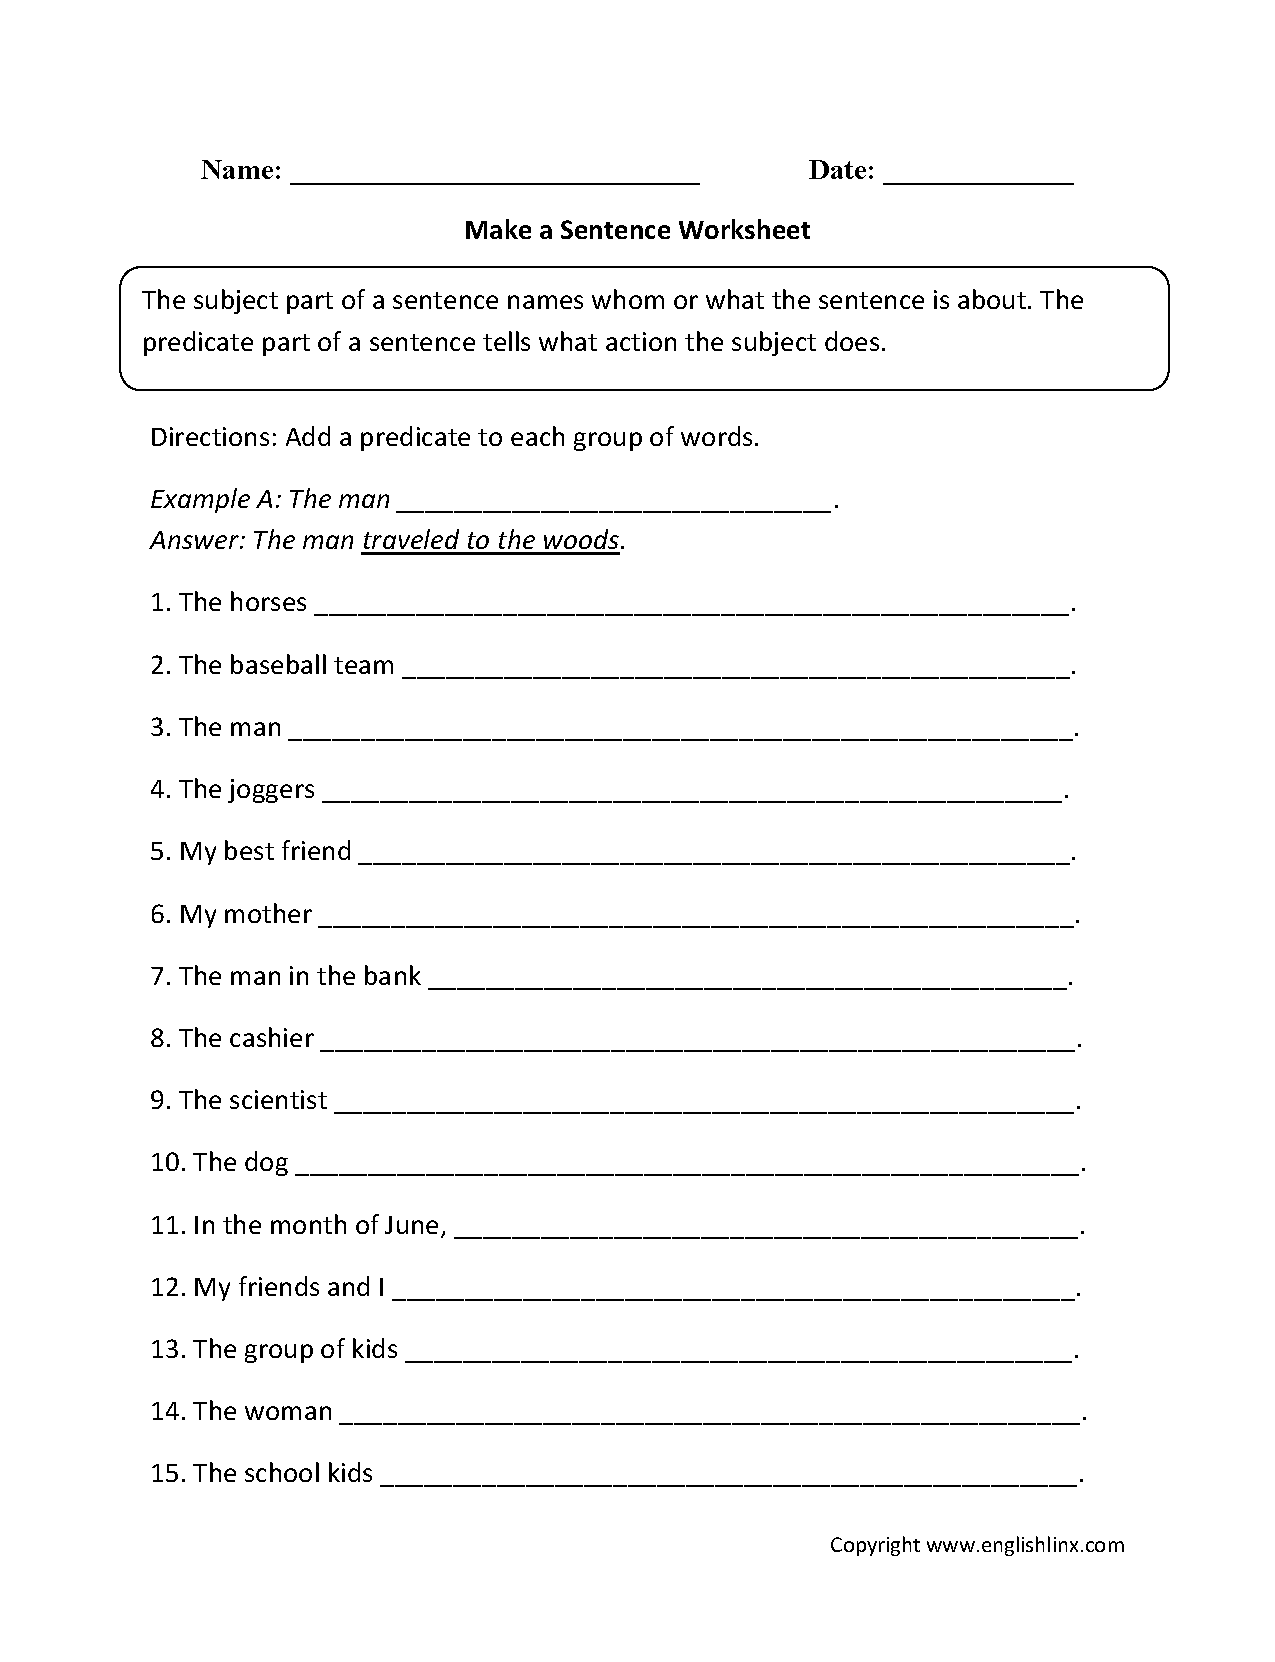 Worksheets Vocabulary Builder Worksheets sentence structure worksheets building worksheets